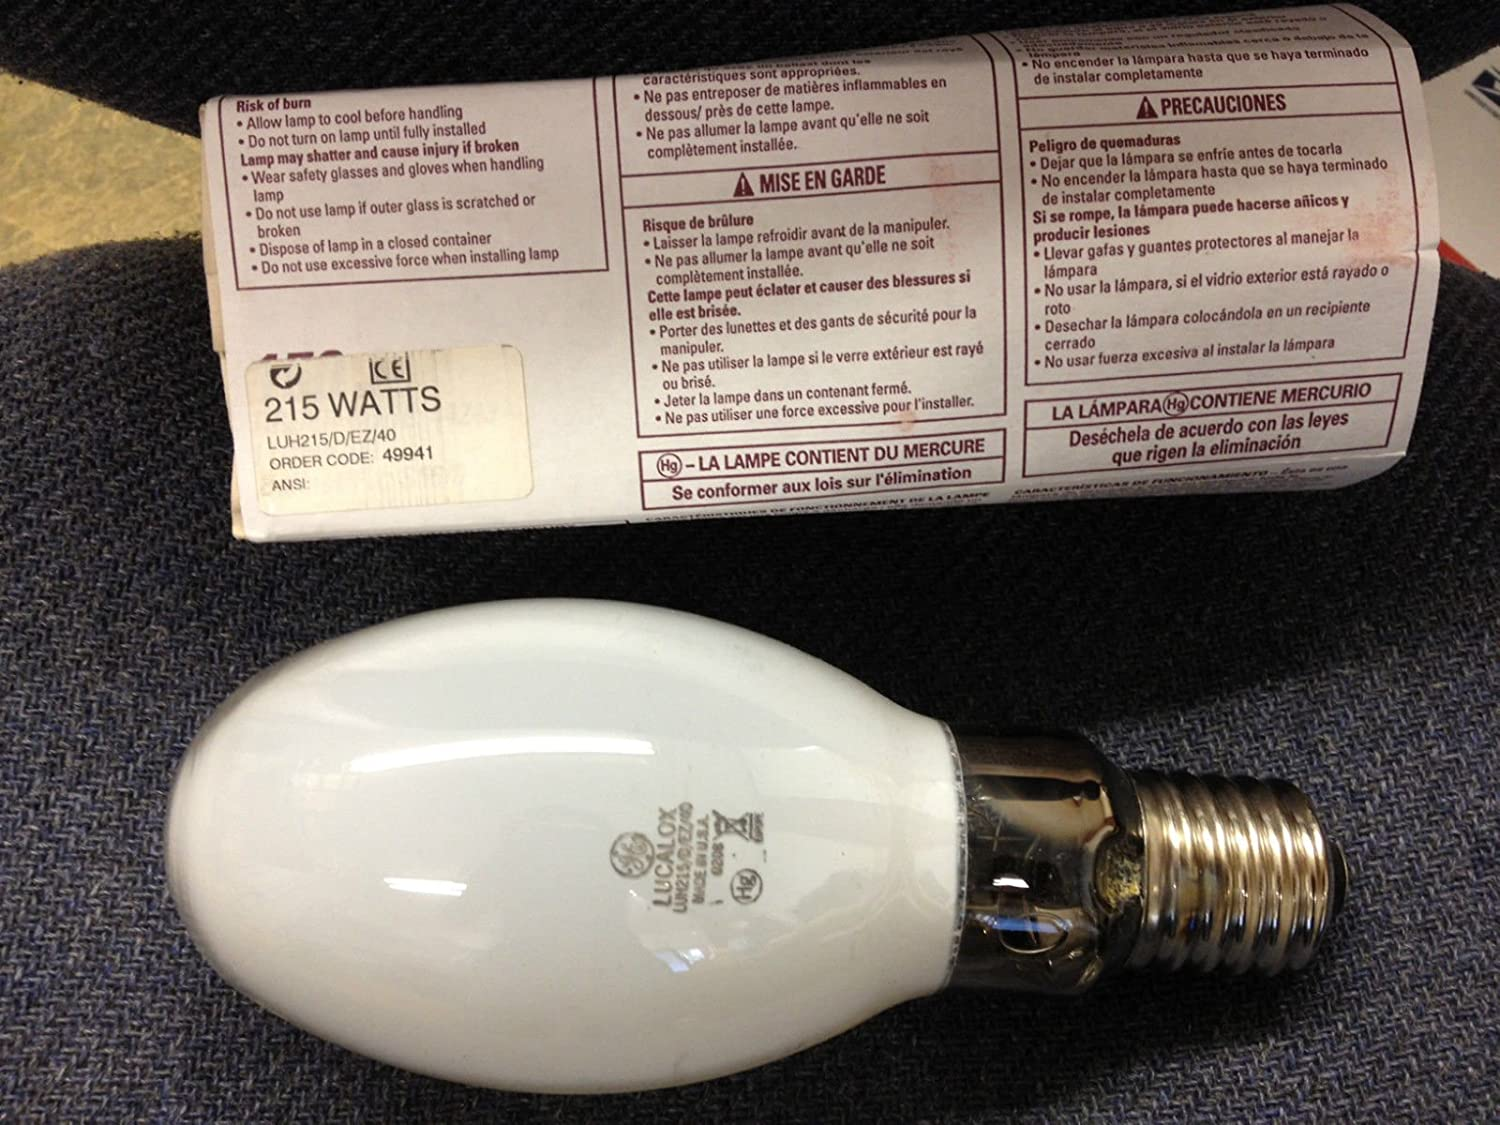 6 Pieces GE 49941 LUH215/D/Ez/40 Lucalox Lamp Hp Sodium Mercury Vapor 250 Retrofit Bulb: Amazon.com: Industrial & Scientific